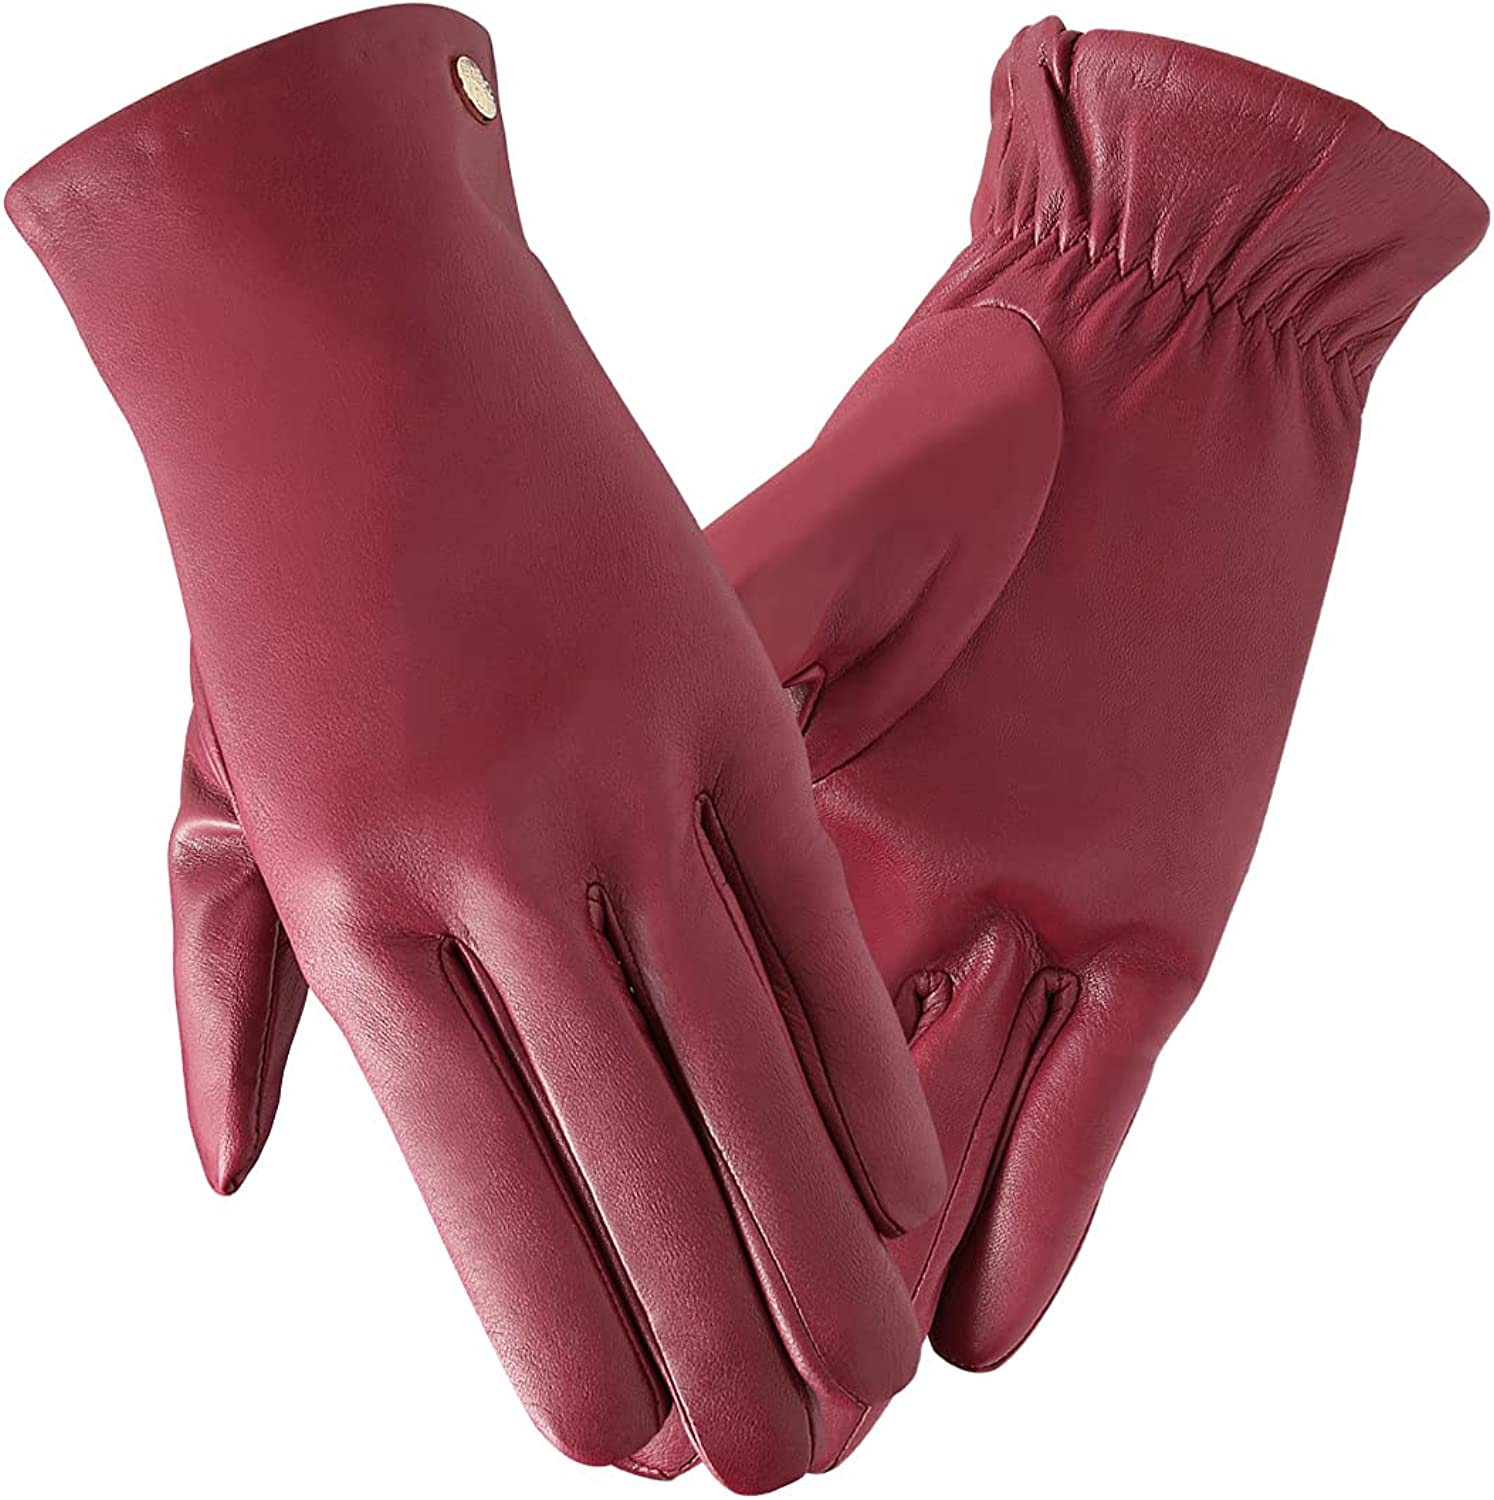 Frlozs Soft Winter Genuine Leather Gloves for Women Warm Cashmere Lining Driving